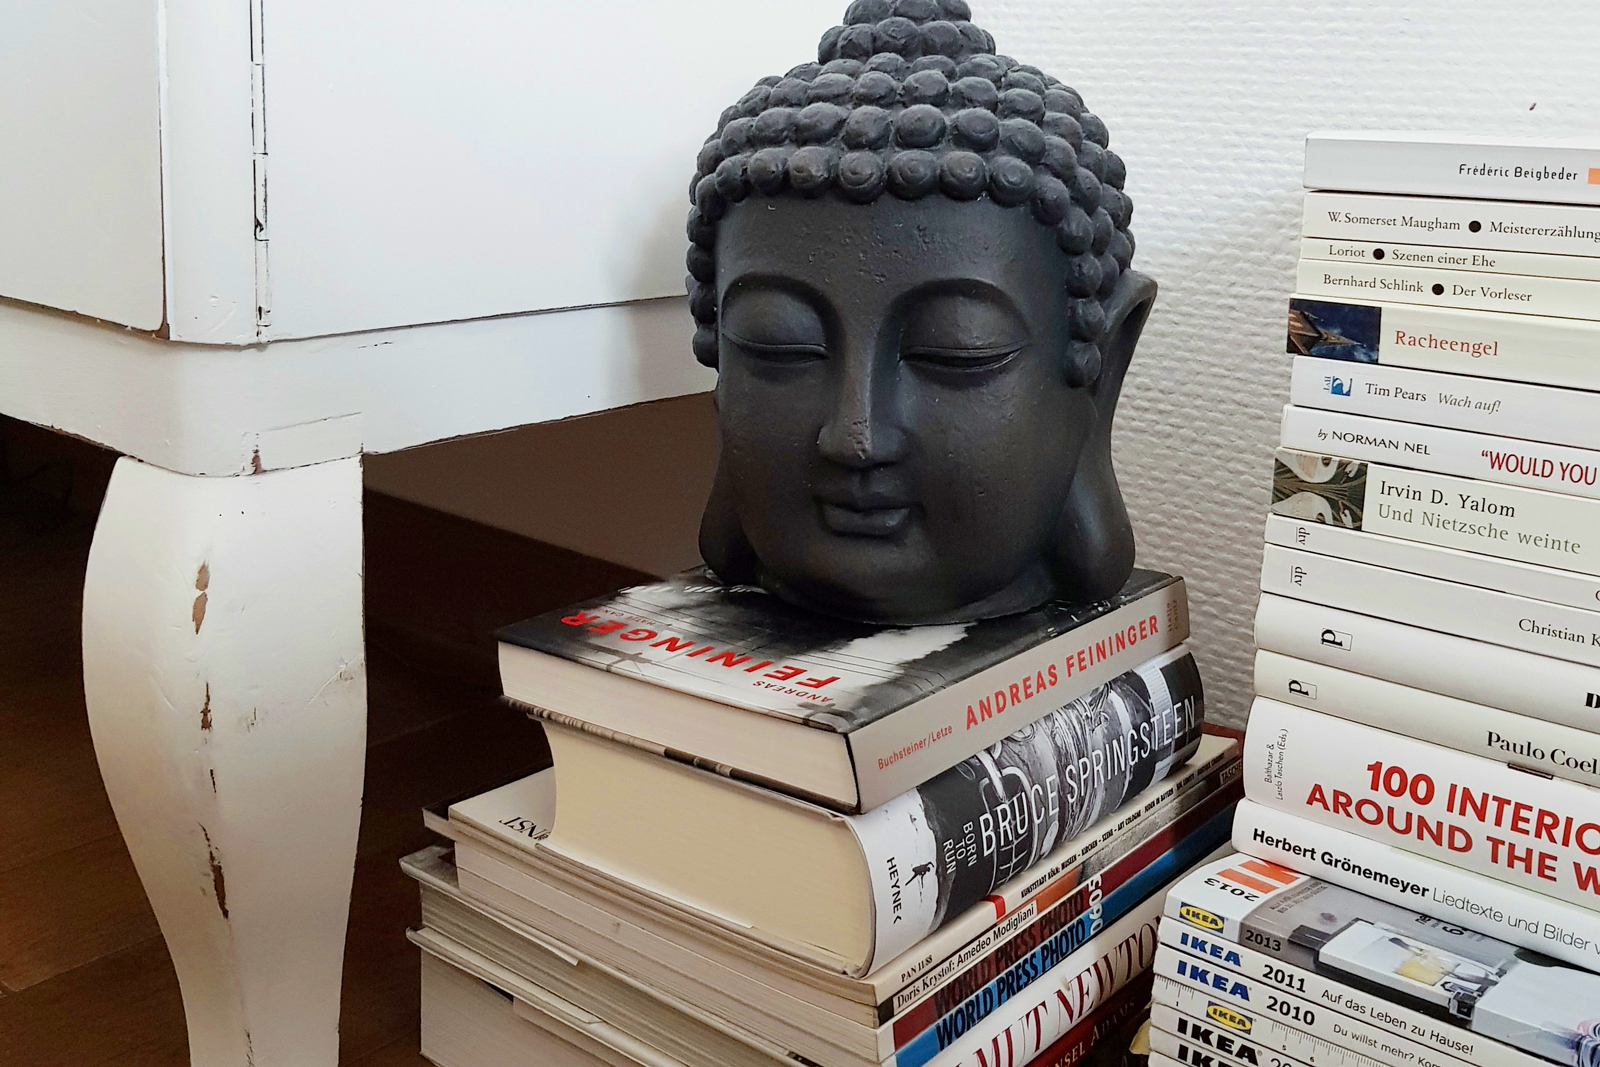 A gray buddha statue on a stack of white books, catalogs